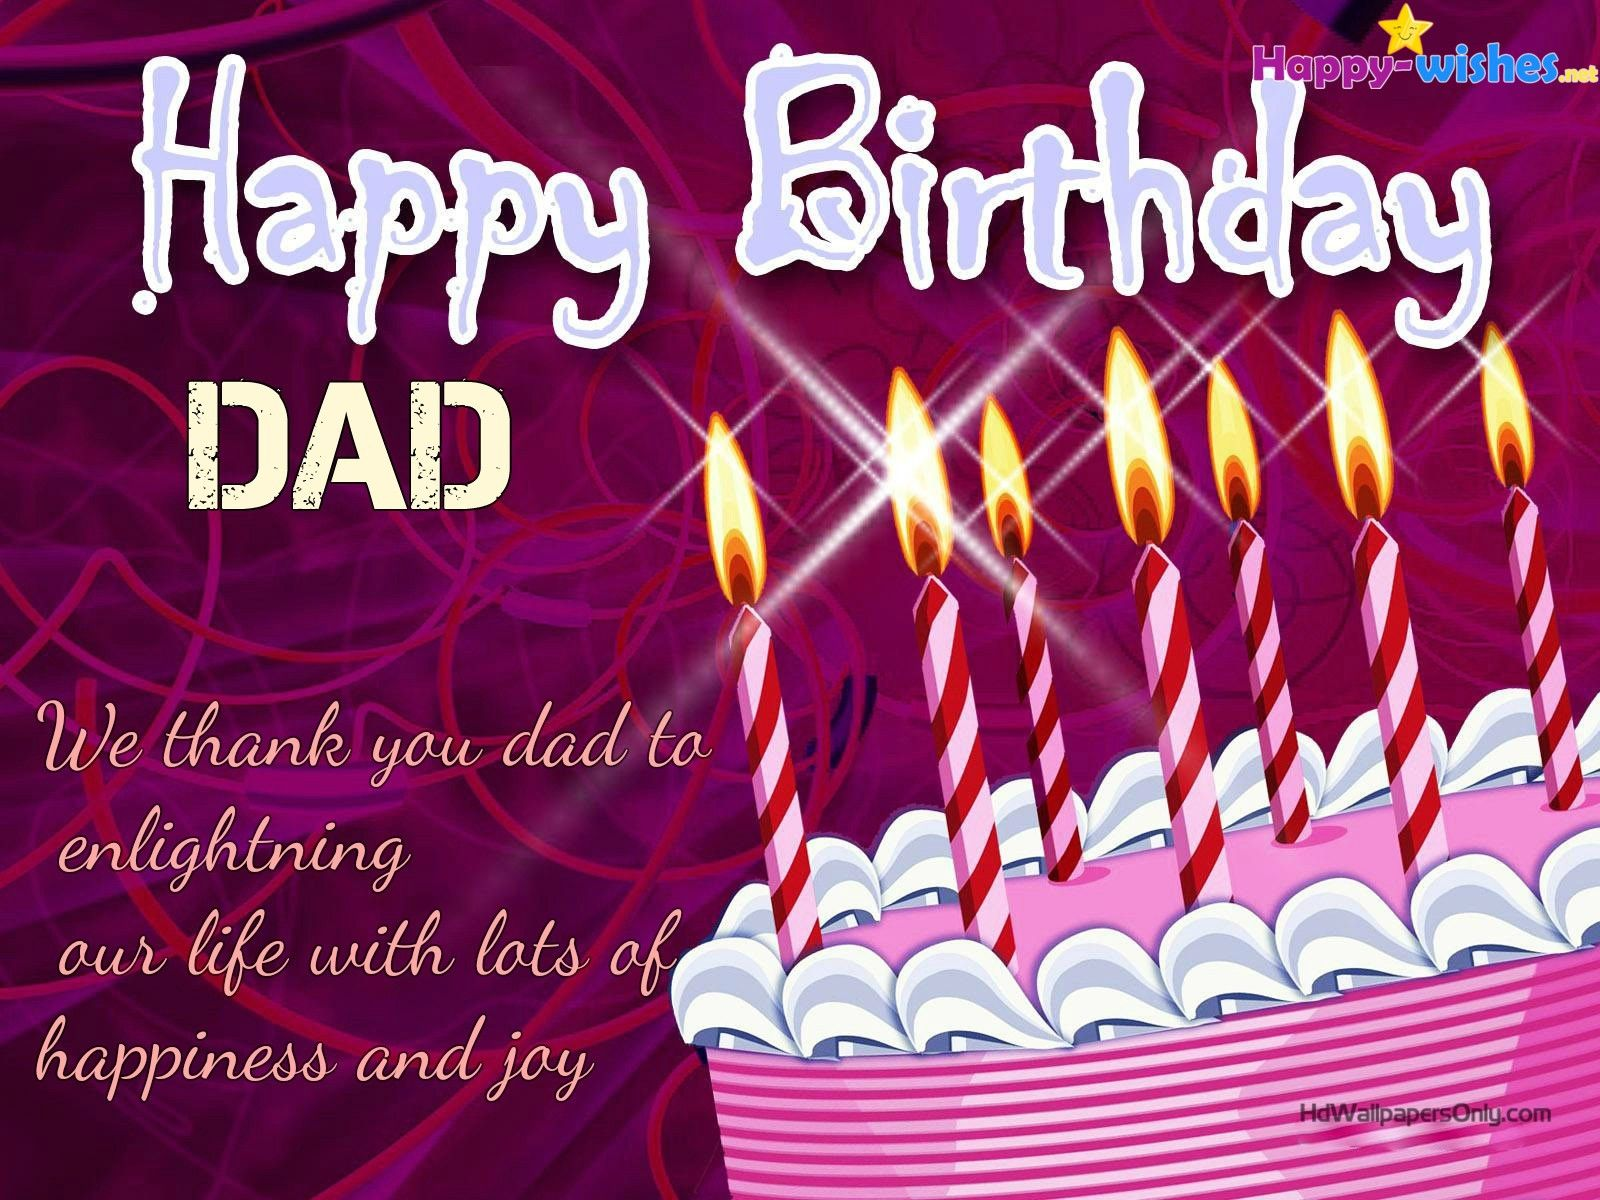 Happy birthday quotes for dad birthday cakes pinterest happy birthday quotes for dad birthday greeting messagebirthday kristyandbryce Gallery